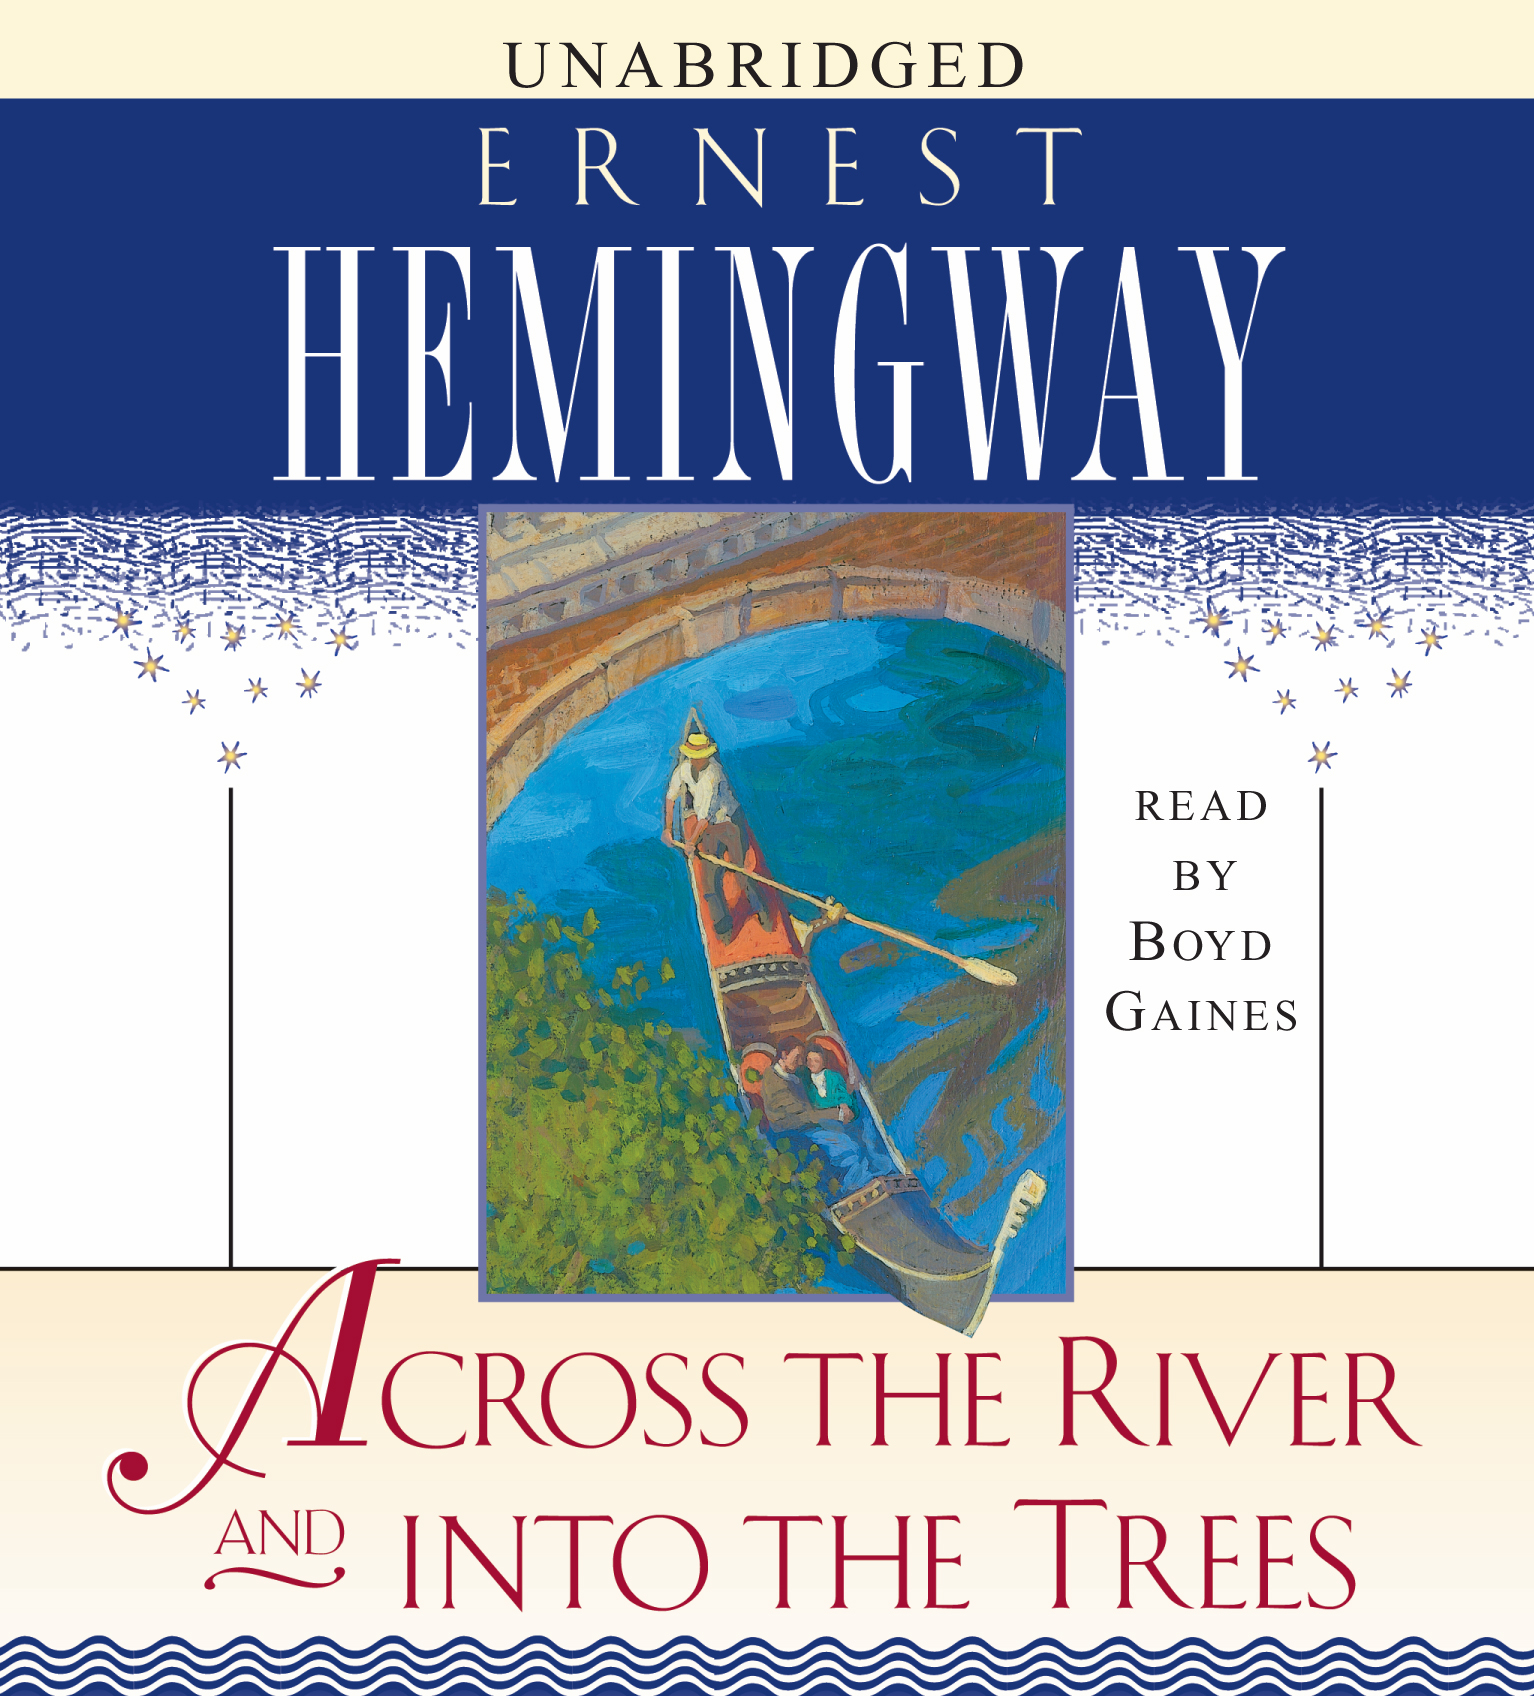 Book Cover Image (jpg): Across The River And Into The Trees